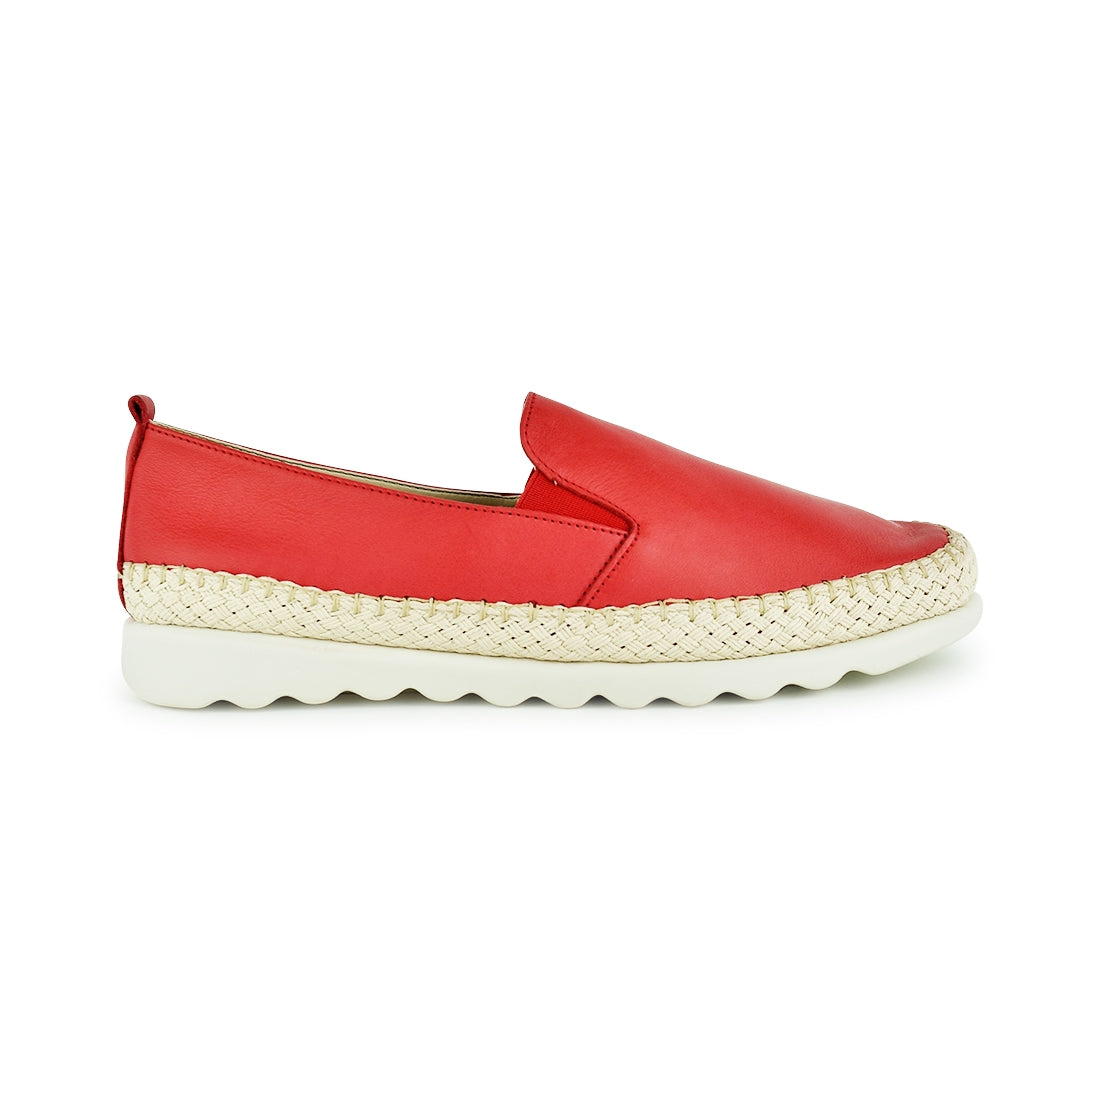 CHAPPIE - The Flexx Closed Shoe Red